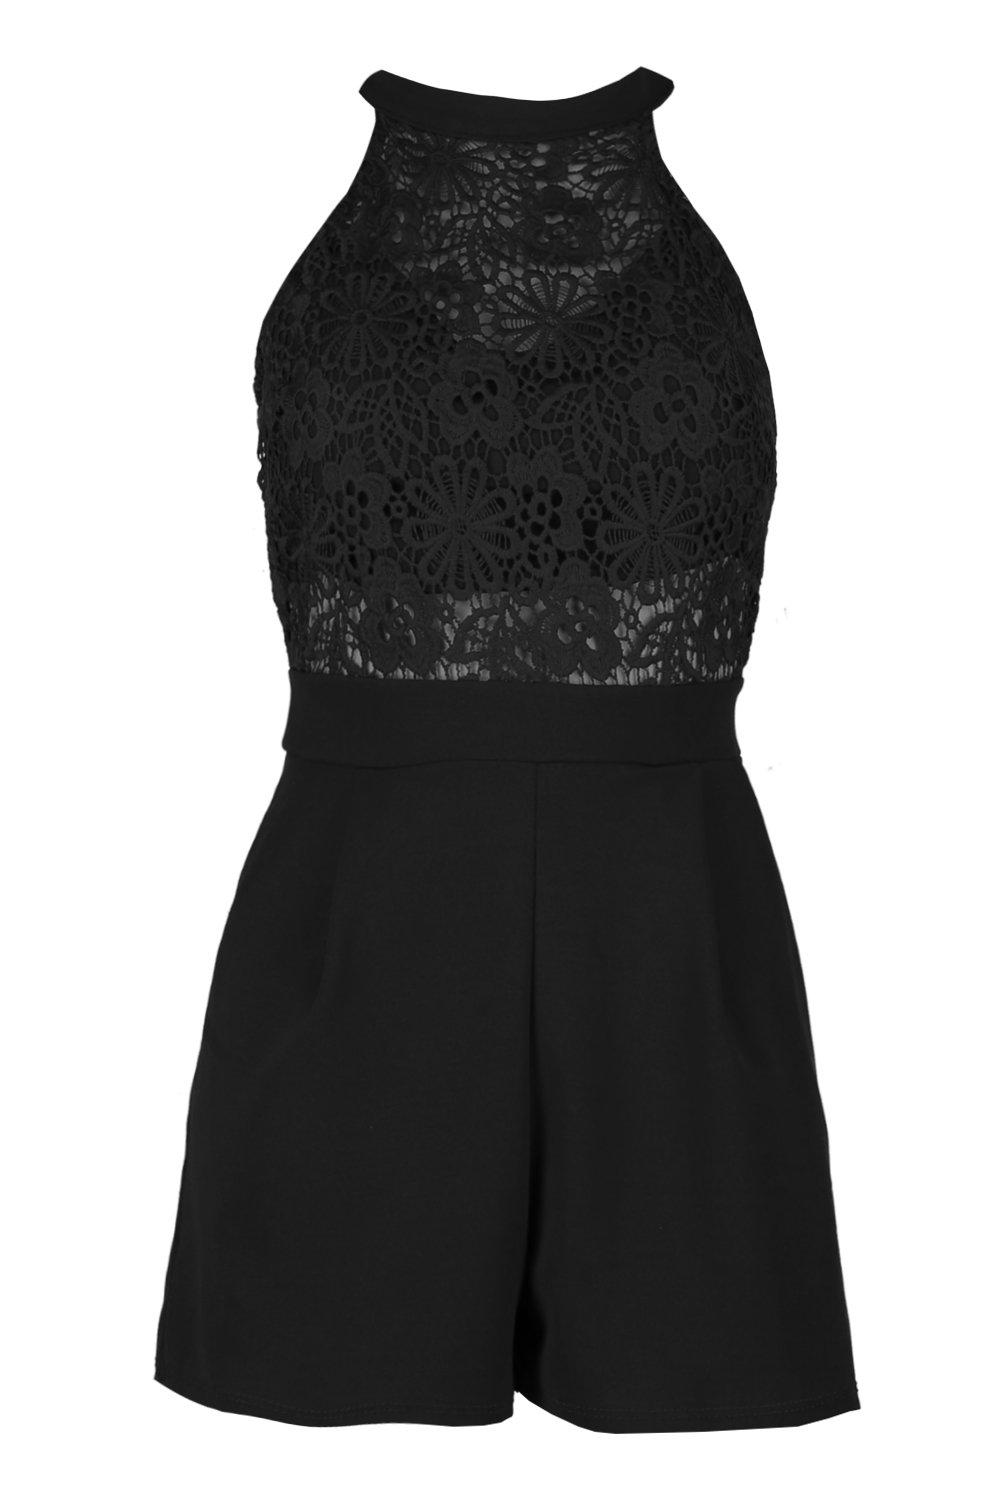 Playsuit Crochet Boutique Detail black High Neck q1fAnfZxwH